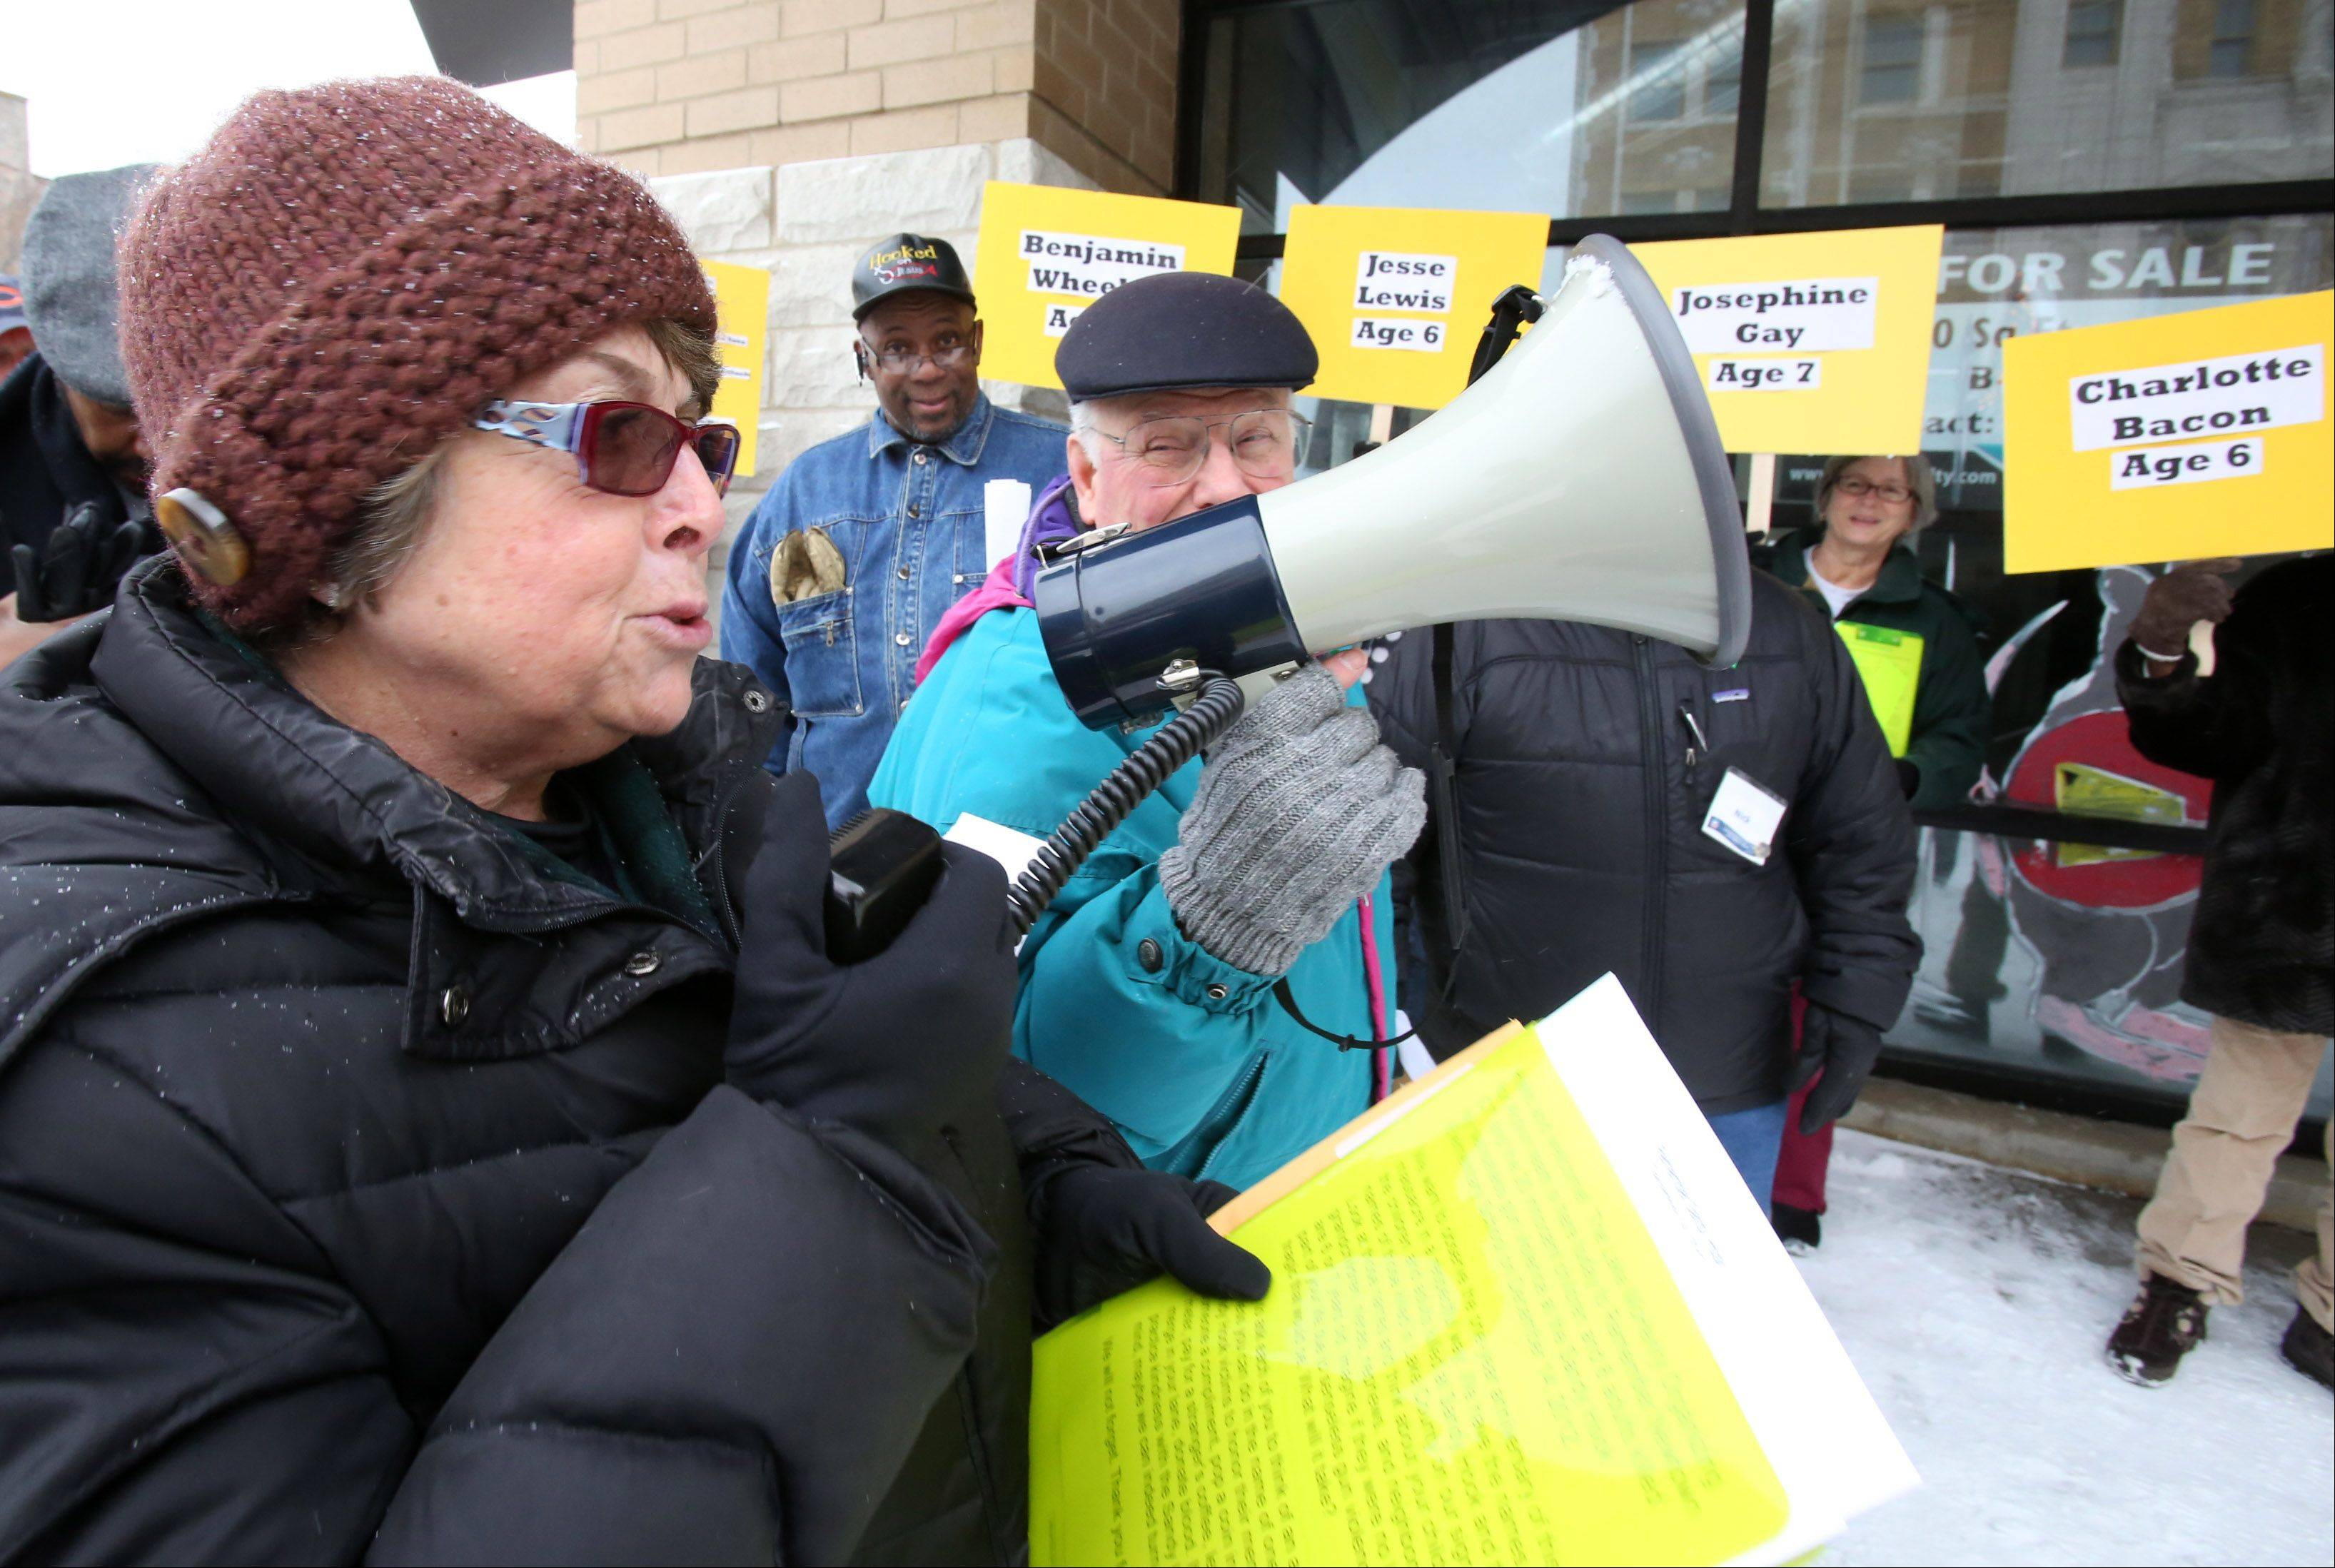 Fran Puchli, team leader with the Lake McHenry Chapter of Organizing for Action, asks people passing by to perform an act of kindness in remembrance of a school shooting that occurred Dec. 14, 2012, in Newtown, Conn. The Lake McHenry Chapter of Organizing for Action hosted a remembrance event Saturday in Waukegan.